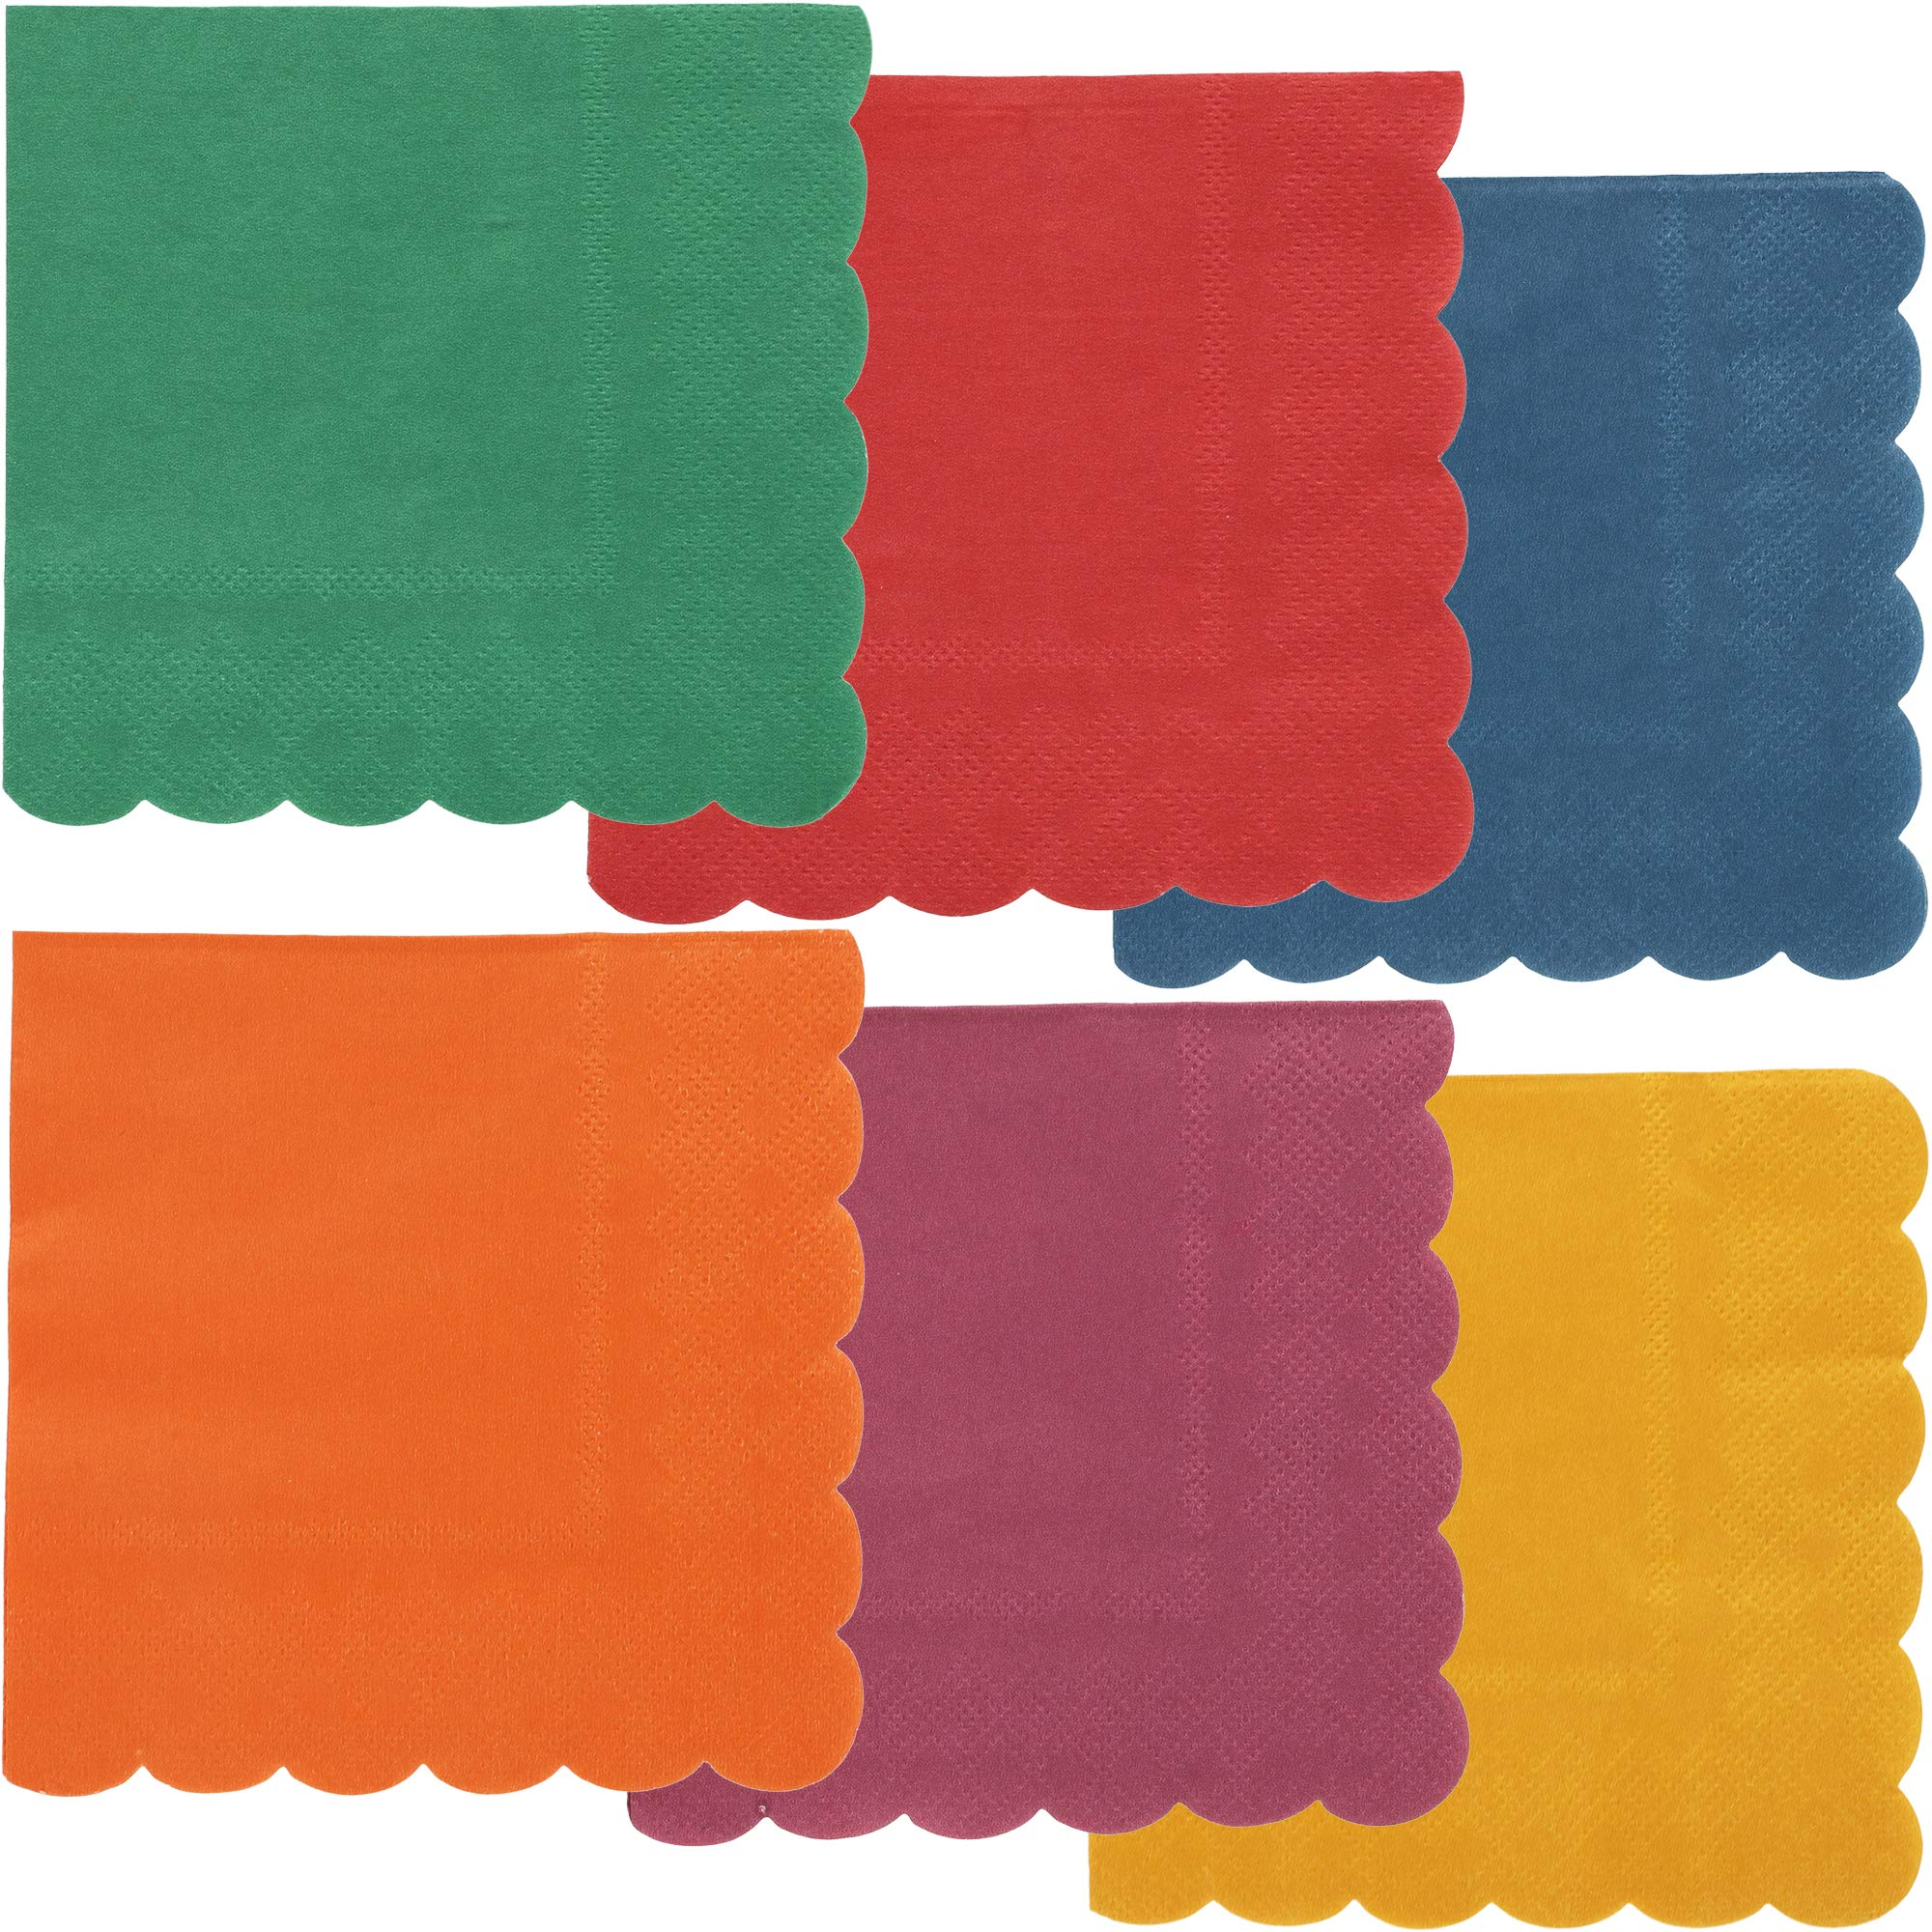 Juvale 240-Pack Bulk 2-Ply Scalloped Paper Cocktail Napkins, 6 Colors, 5 x 5 Inches by Juvale